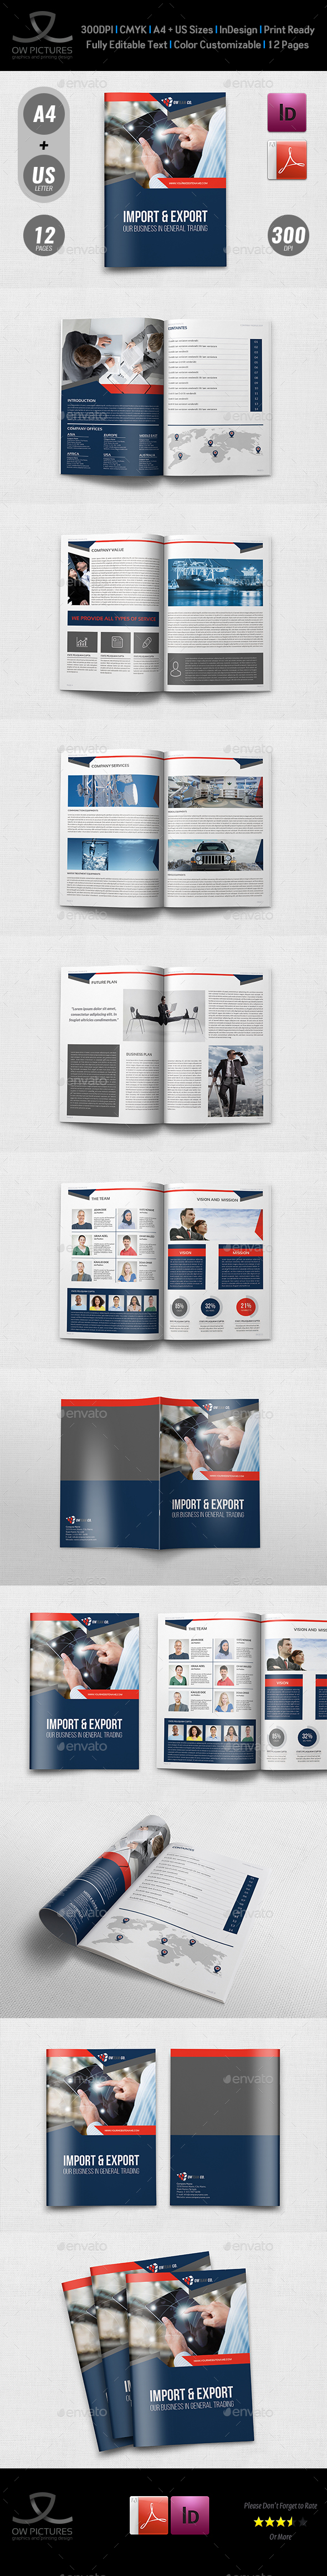 Company Profile Brochure Template Vol.44 -12 Pages - Corporate Brochures